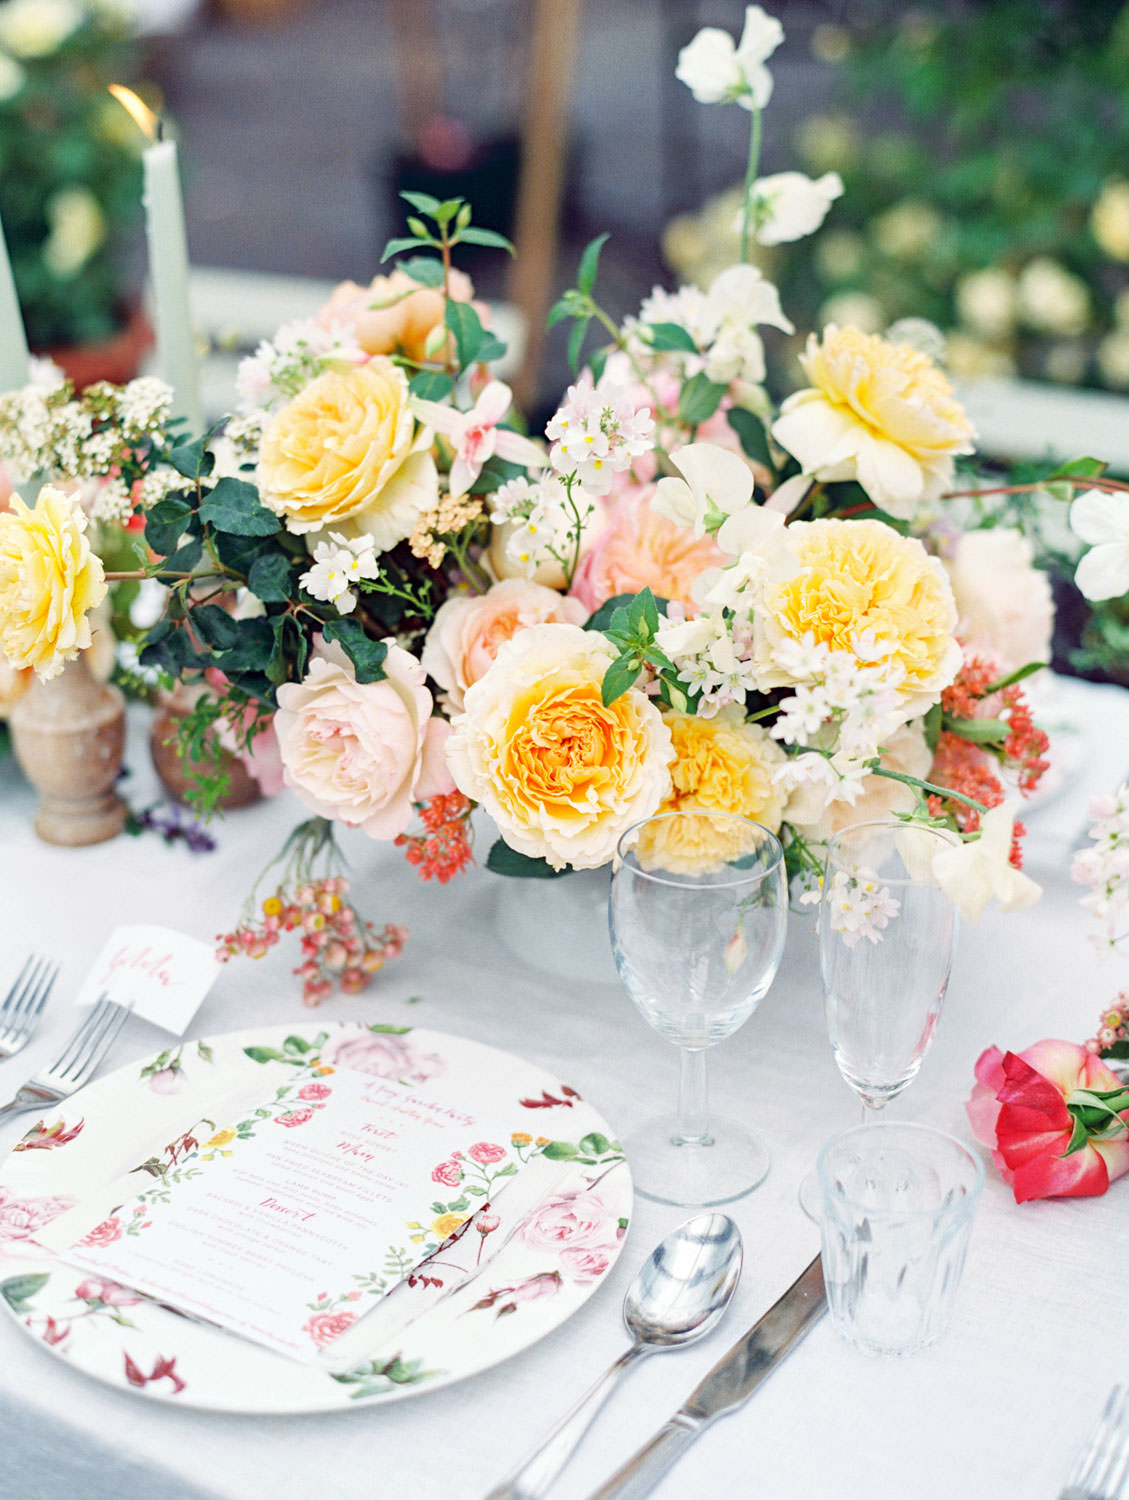 Pink, yellow, orange, muted teal, and white floral themed tablescape for lunch at David Austin Roses by Joy Proctor, Bows and Arrows flowers, Rosie Harbottle menus on the Flutter Magazine Retreat in the Cotswolds